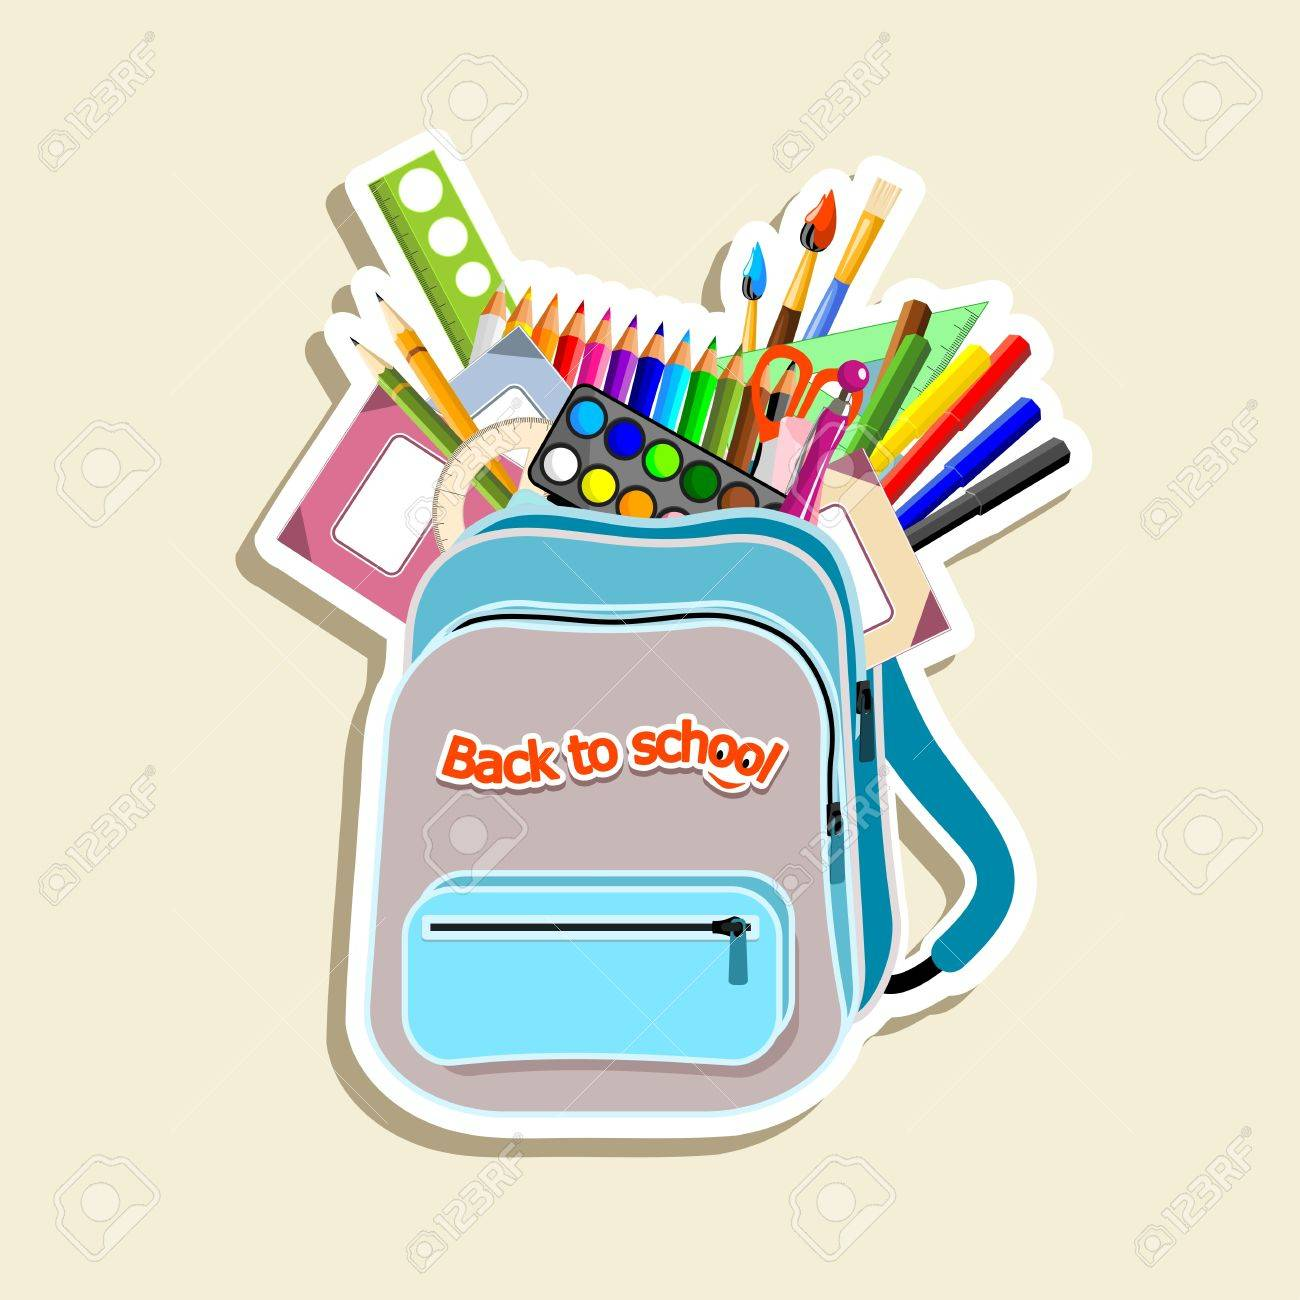 schoolbag with stationery - illustration Stock Vector - 14180840